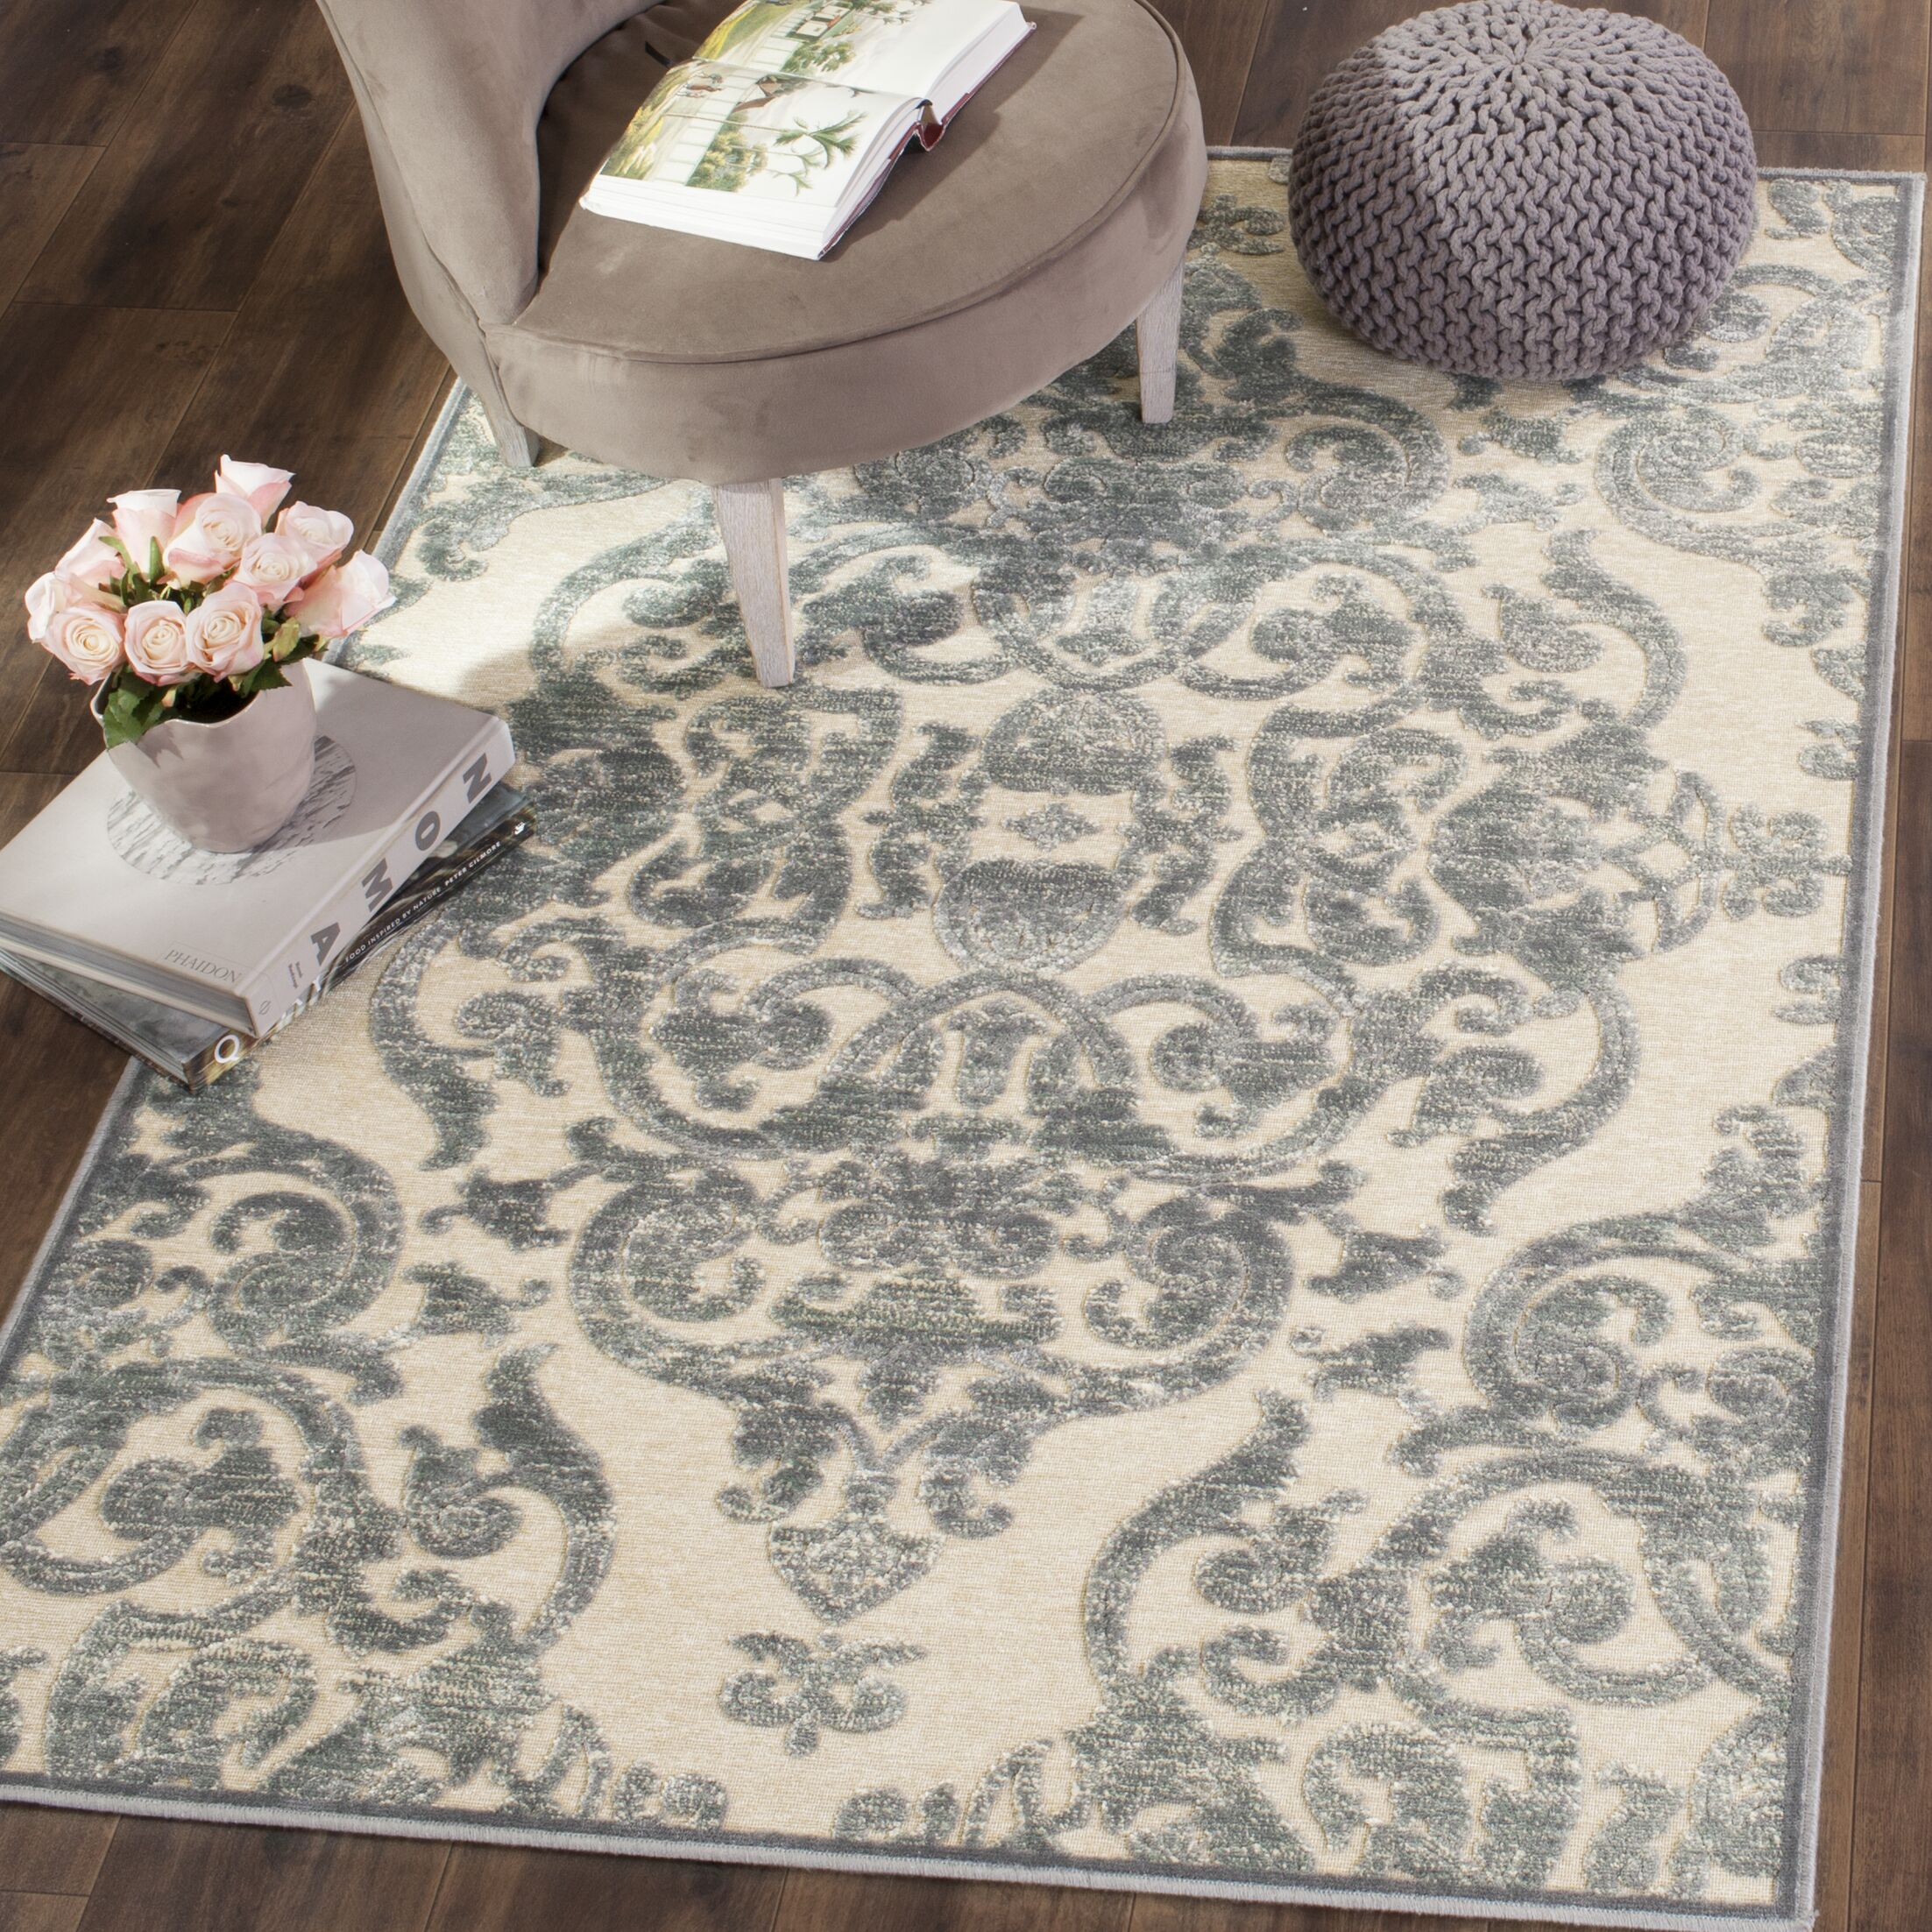 Maspeth Gray/Ivory Area Rug Rug Size: Rectangle 7'6